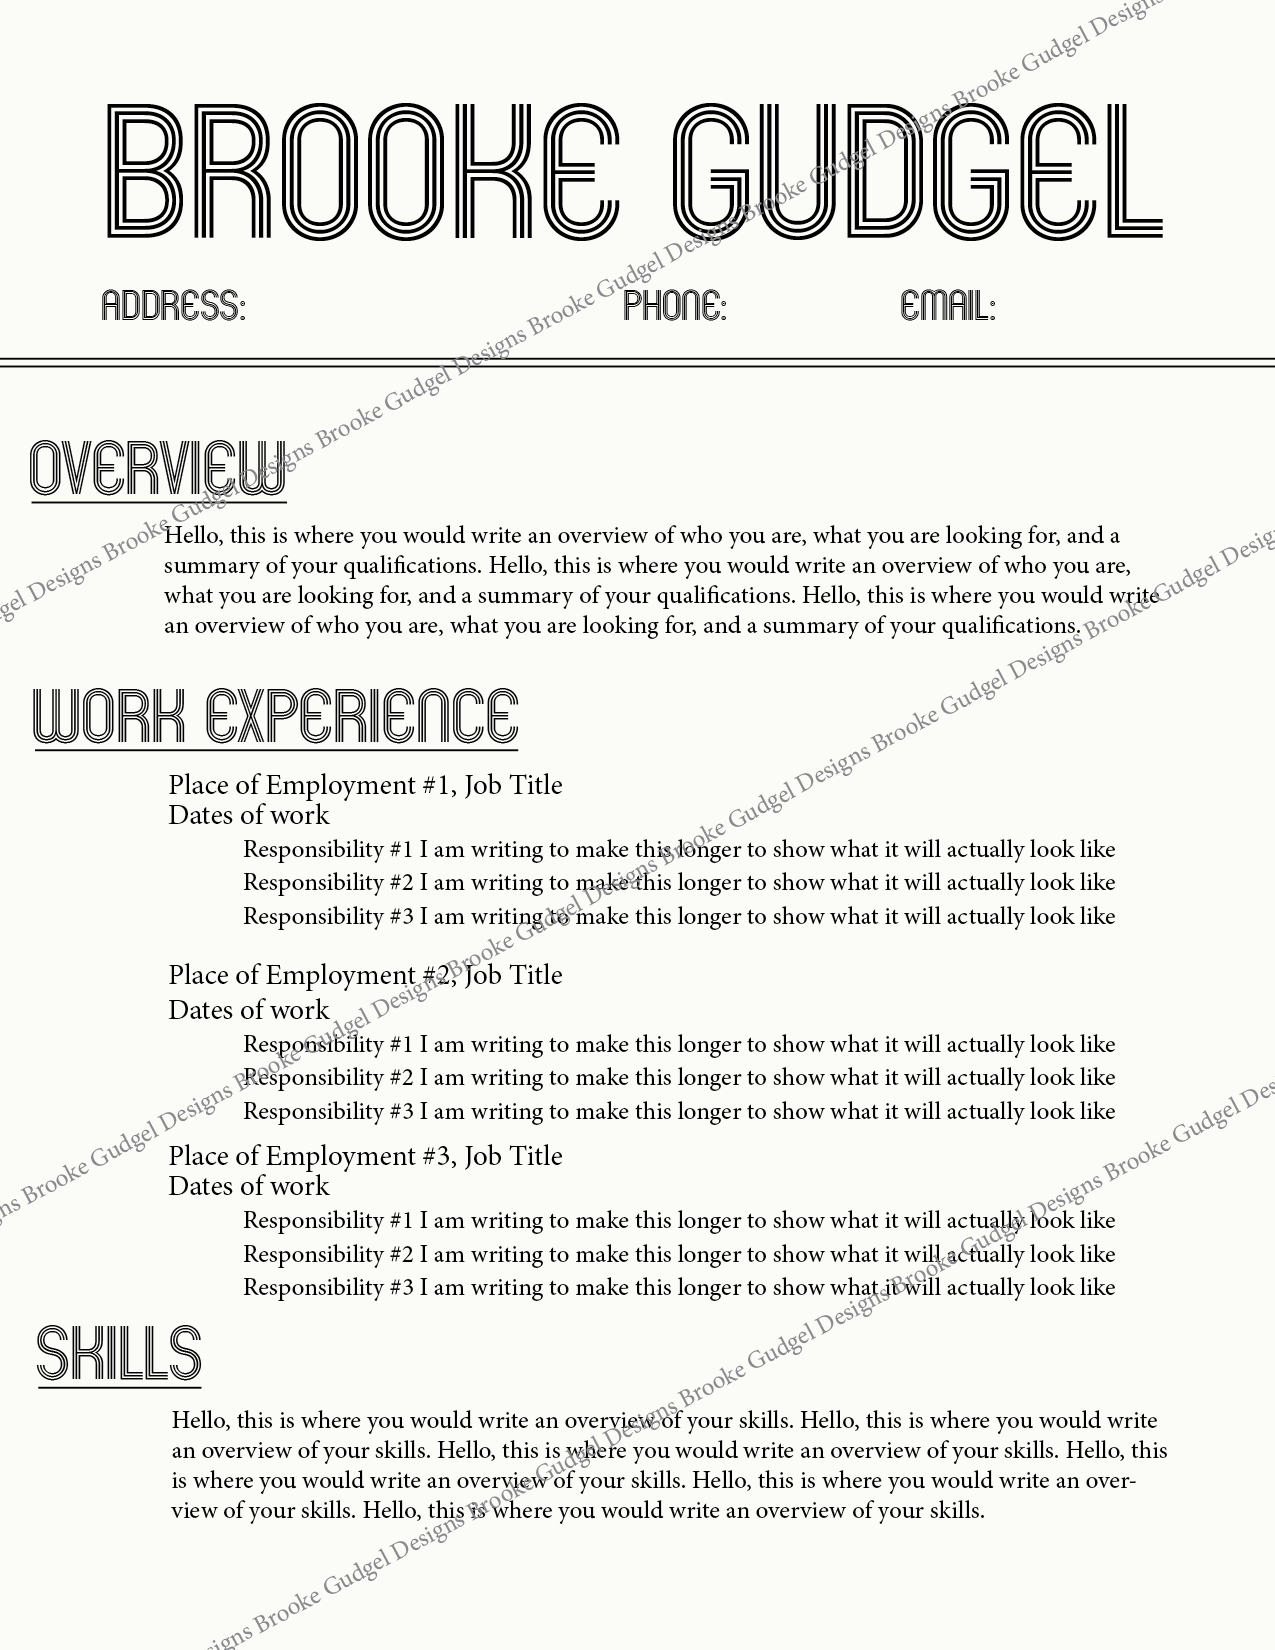 retro resume contact brookegudgel rush sorority resume template creative spice. Black Bedroom Furniture Sets. Home Design Ideas